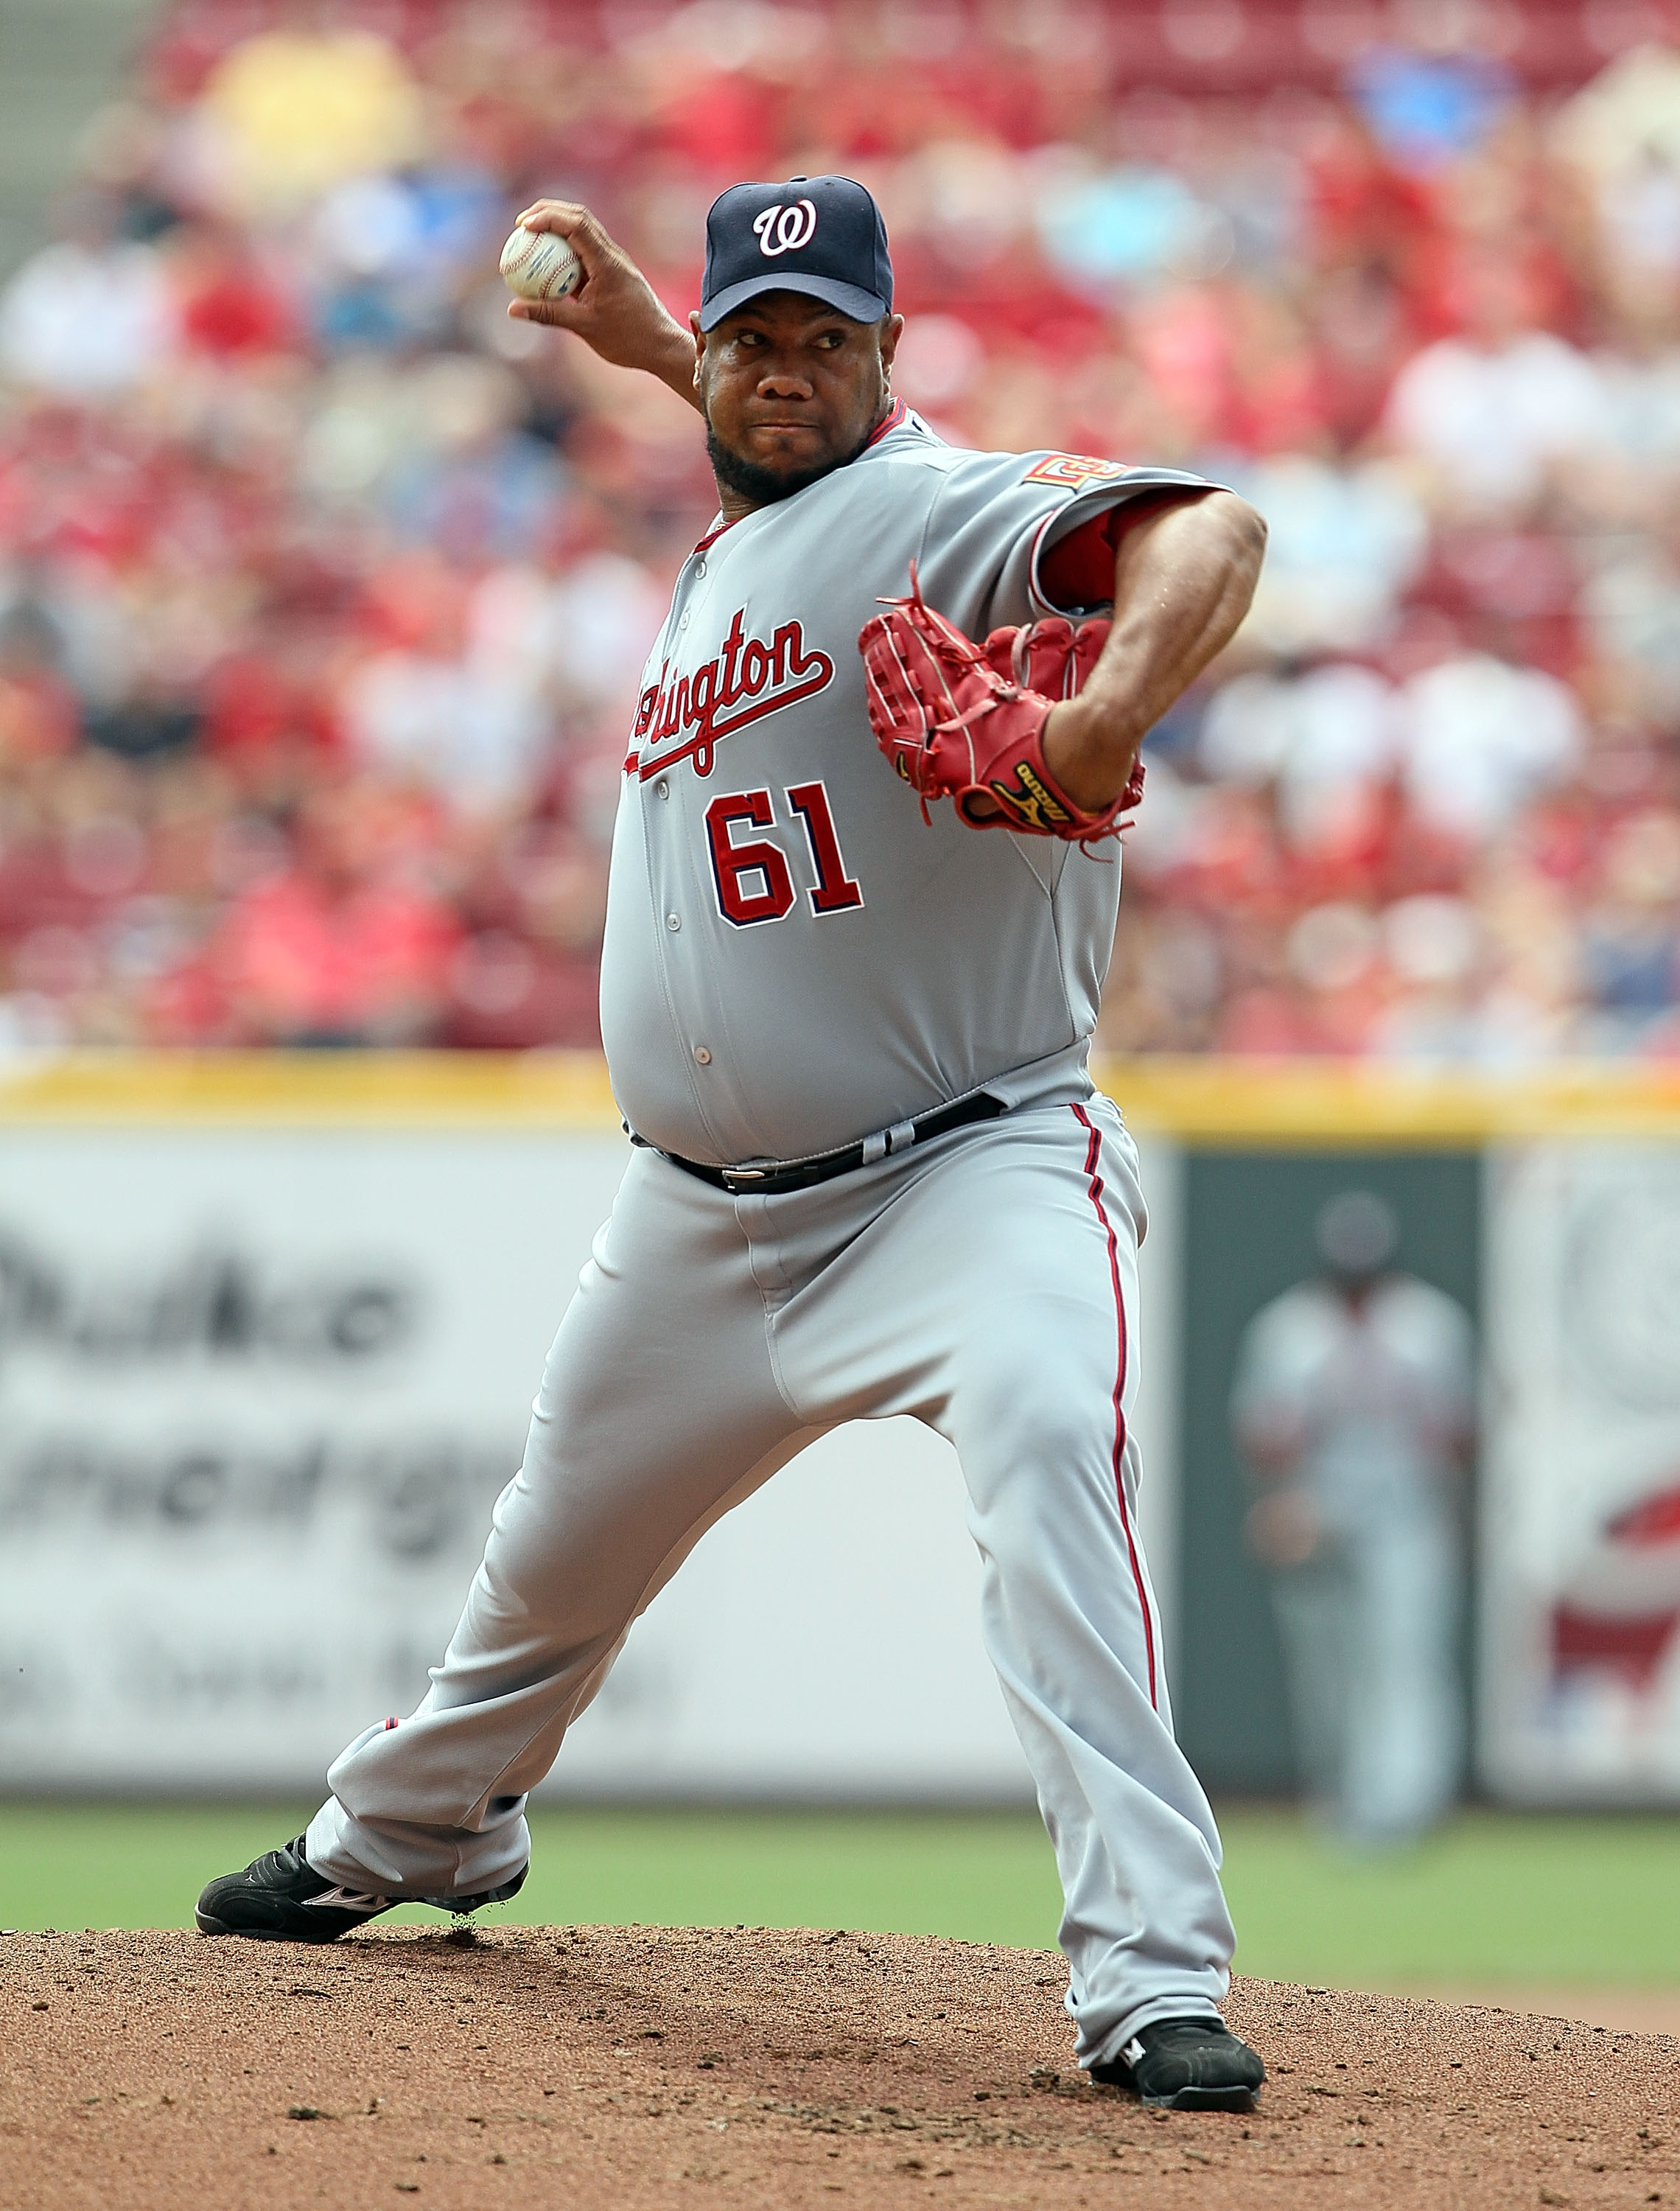 CINCINNATI - JULY 22:  Livan Hernandez #61 of the Washington Nationals throws a pitch during the game against the Cincinnati Reds at Great American Ball Park on July 22, 2010 in Cincinnati, Ohio.  (Photo by Andy Lyons/Getty Images)